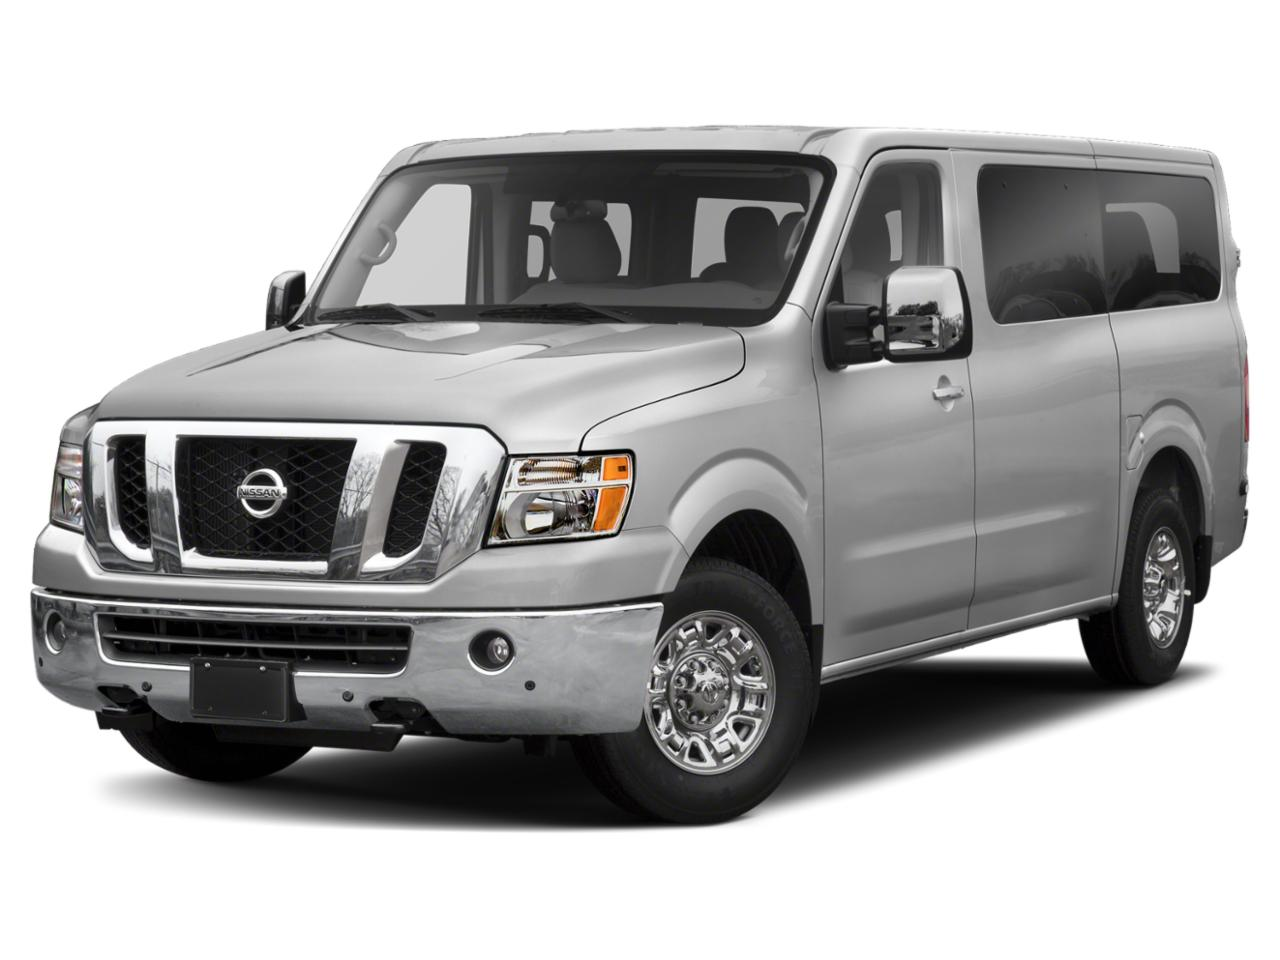 2021 Nissan NV Passenger Vehicle Photo in TEMPLE, TX 76504-3447